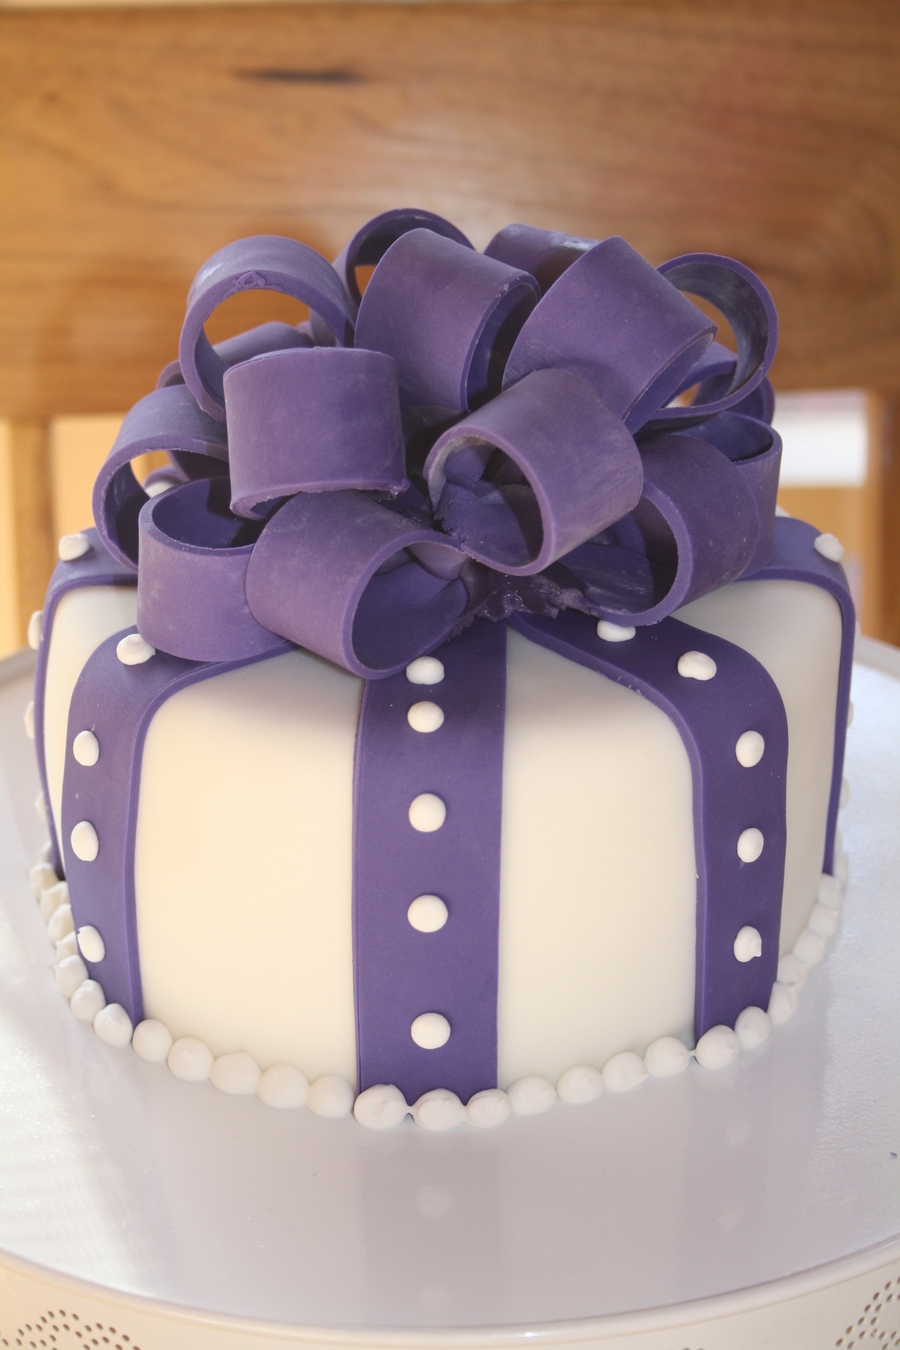 Purple Present Cake on Cake Central